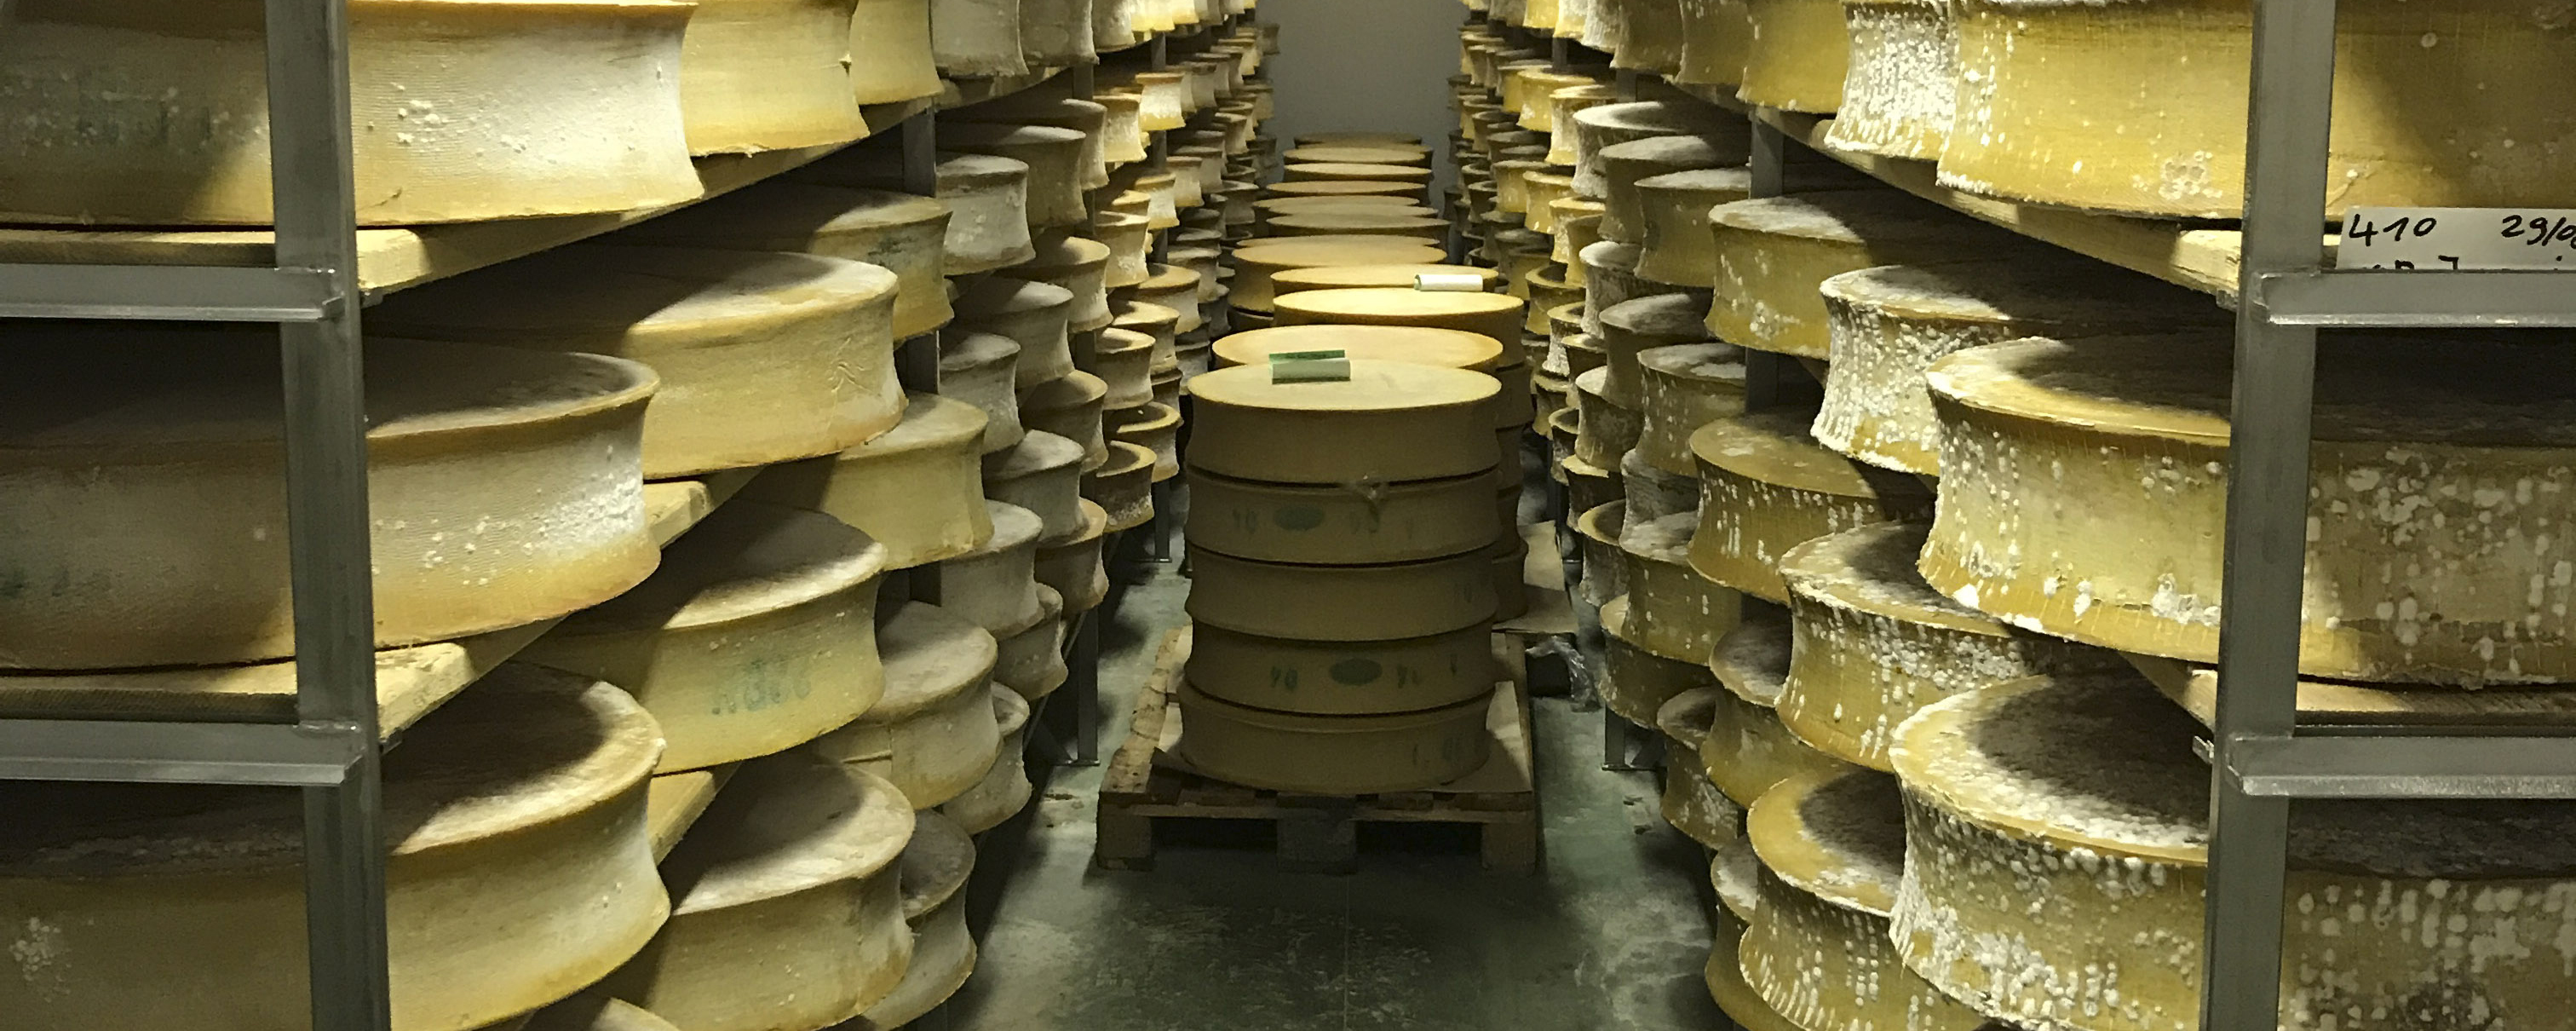 chambre froide conservation fromage